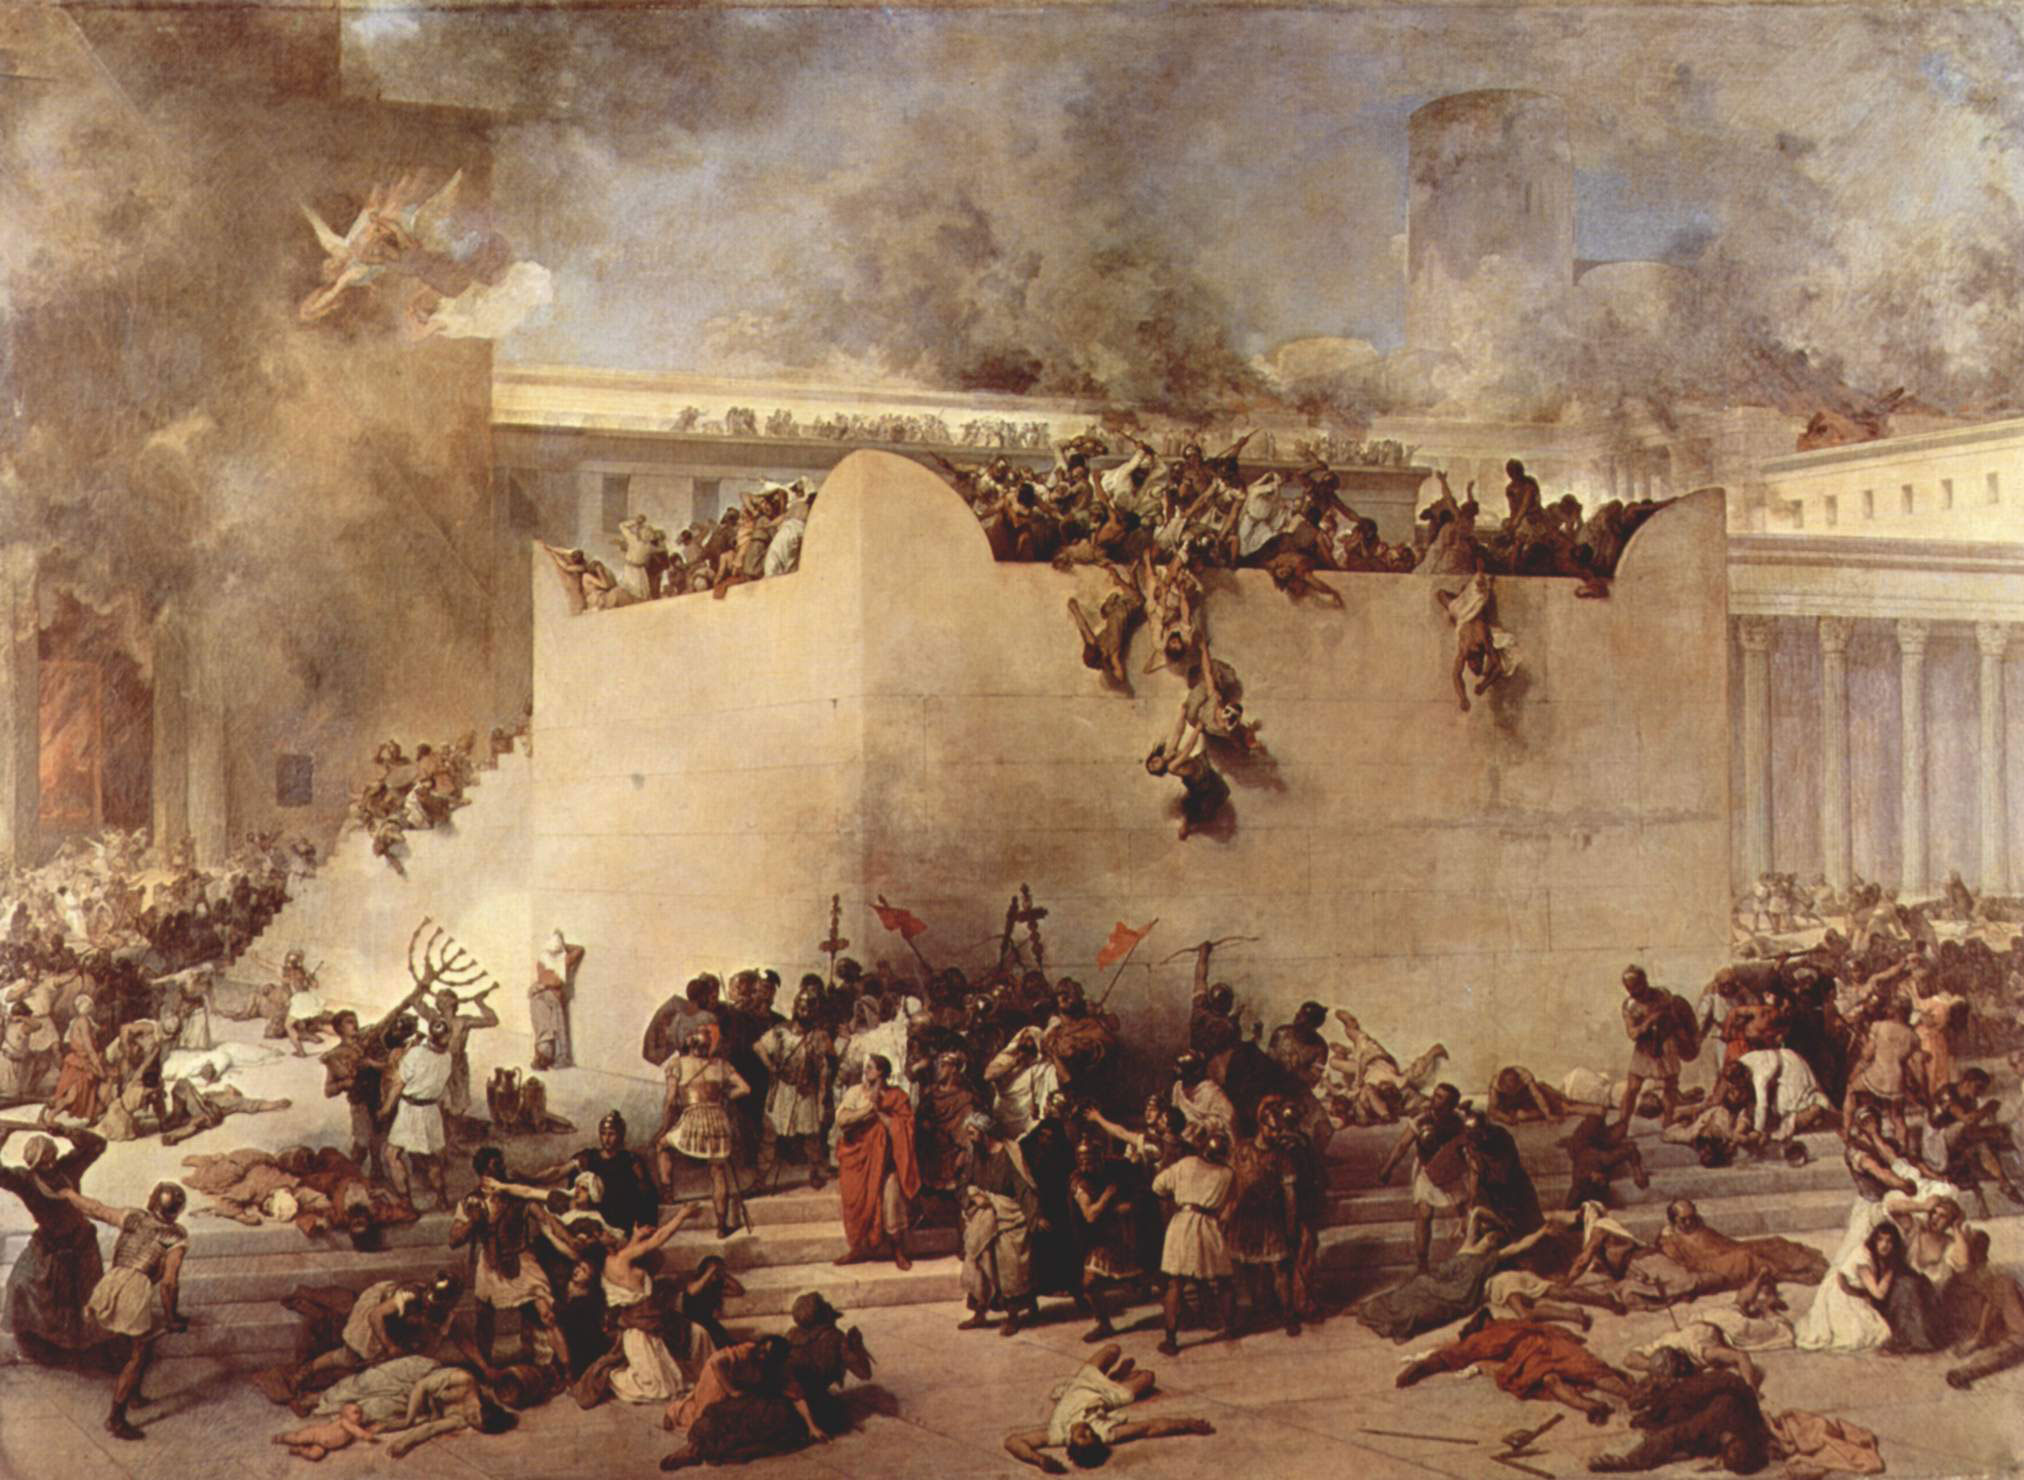 The Siege and Destruction of Jerusalem by David Roberts, 1850